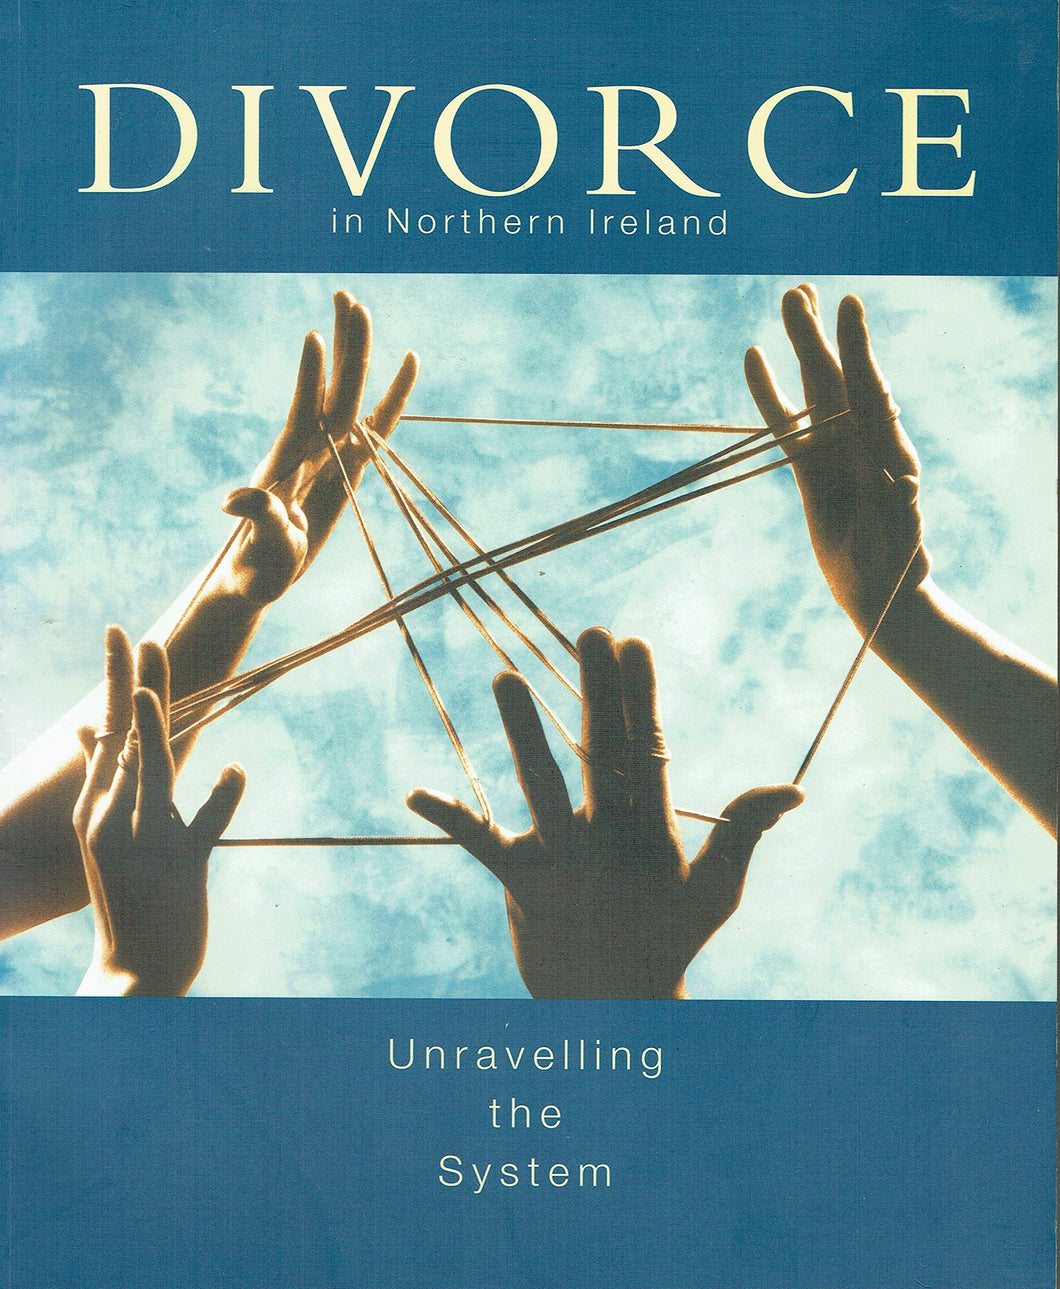 Divorce in Northern Ireland: Unravelling the System